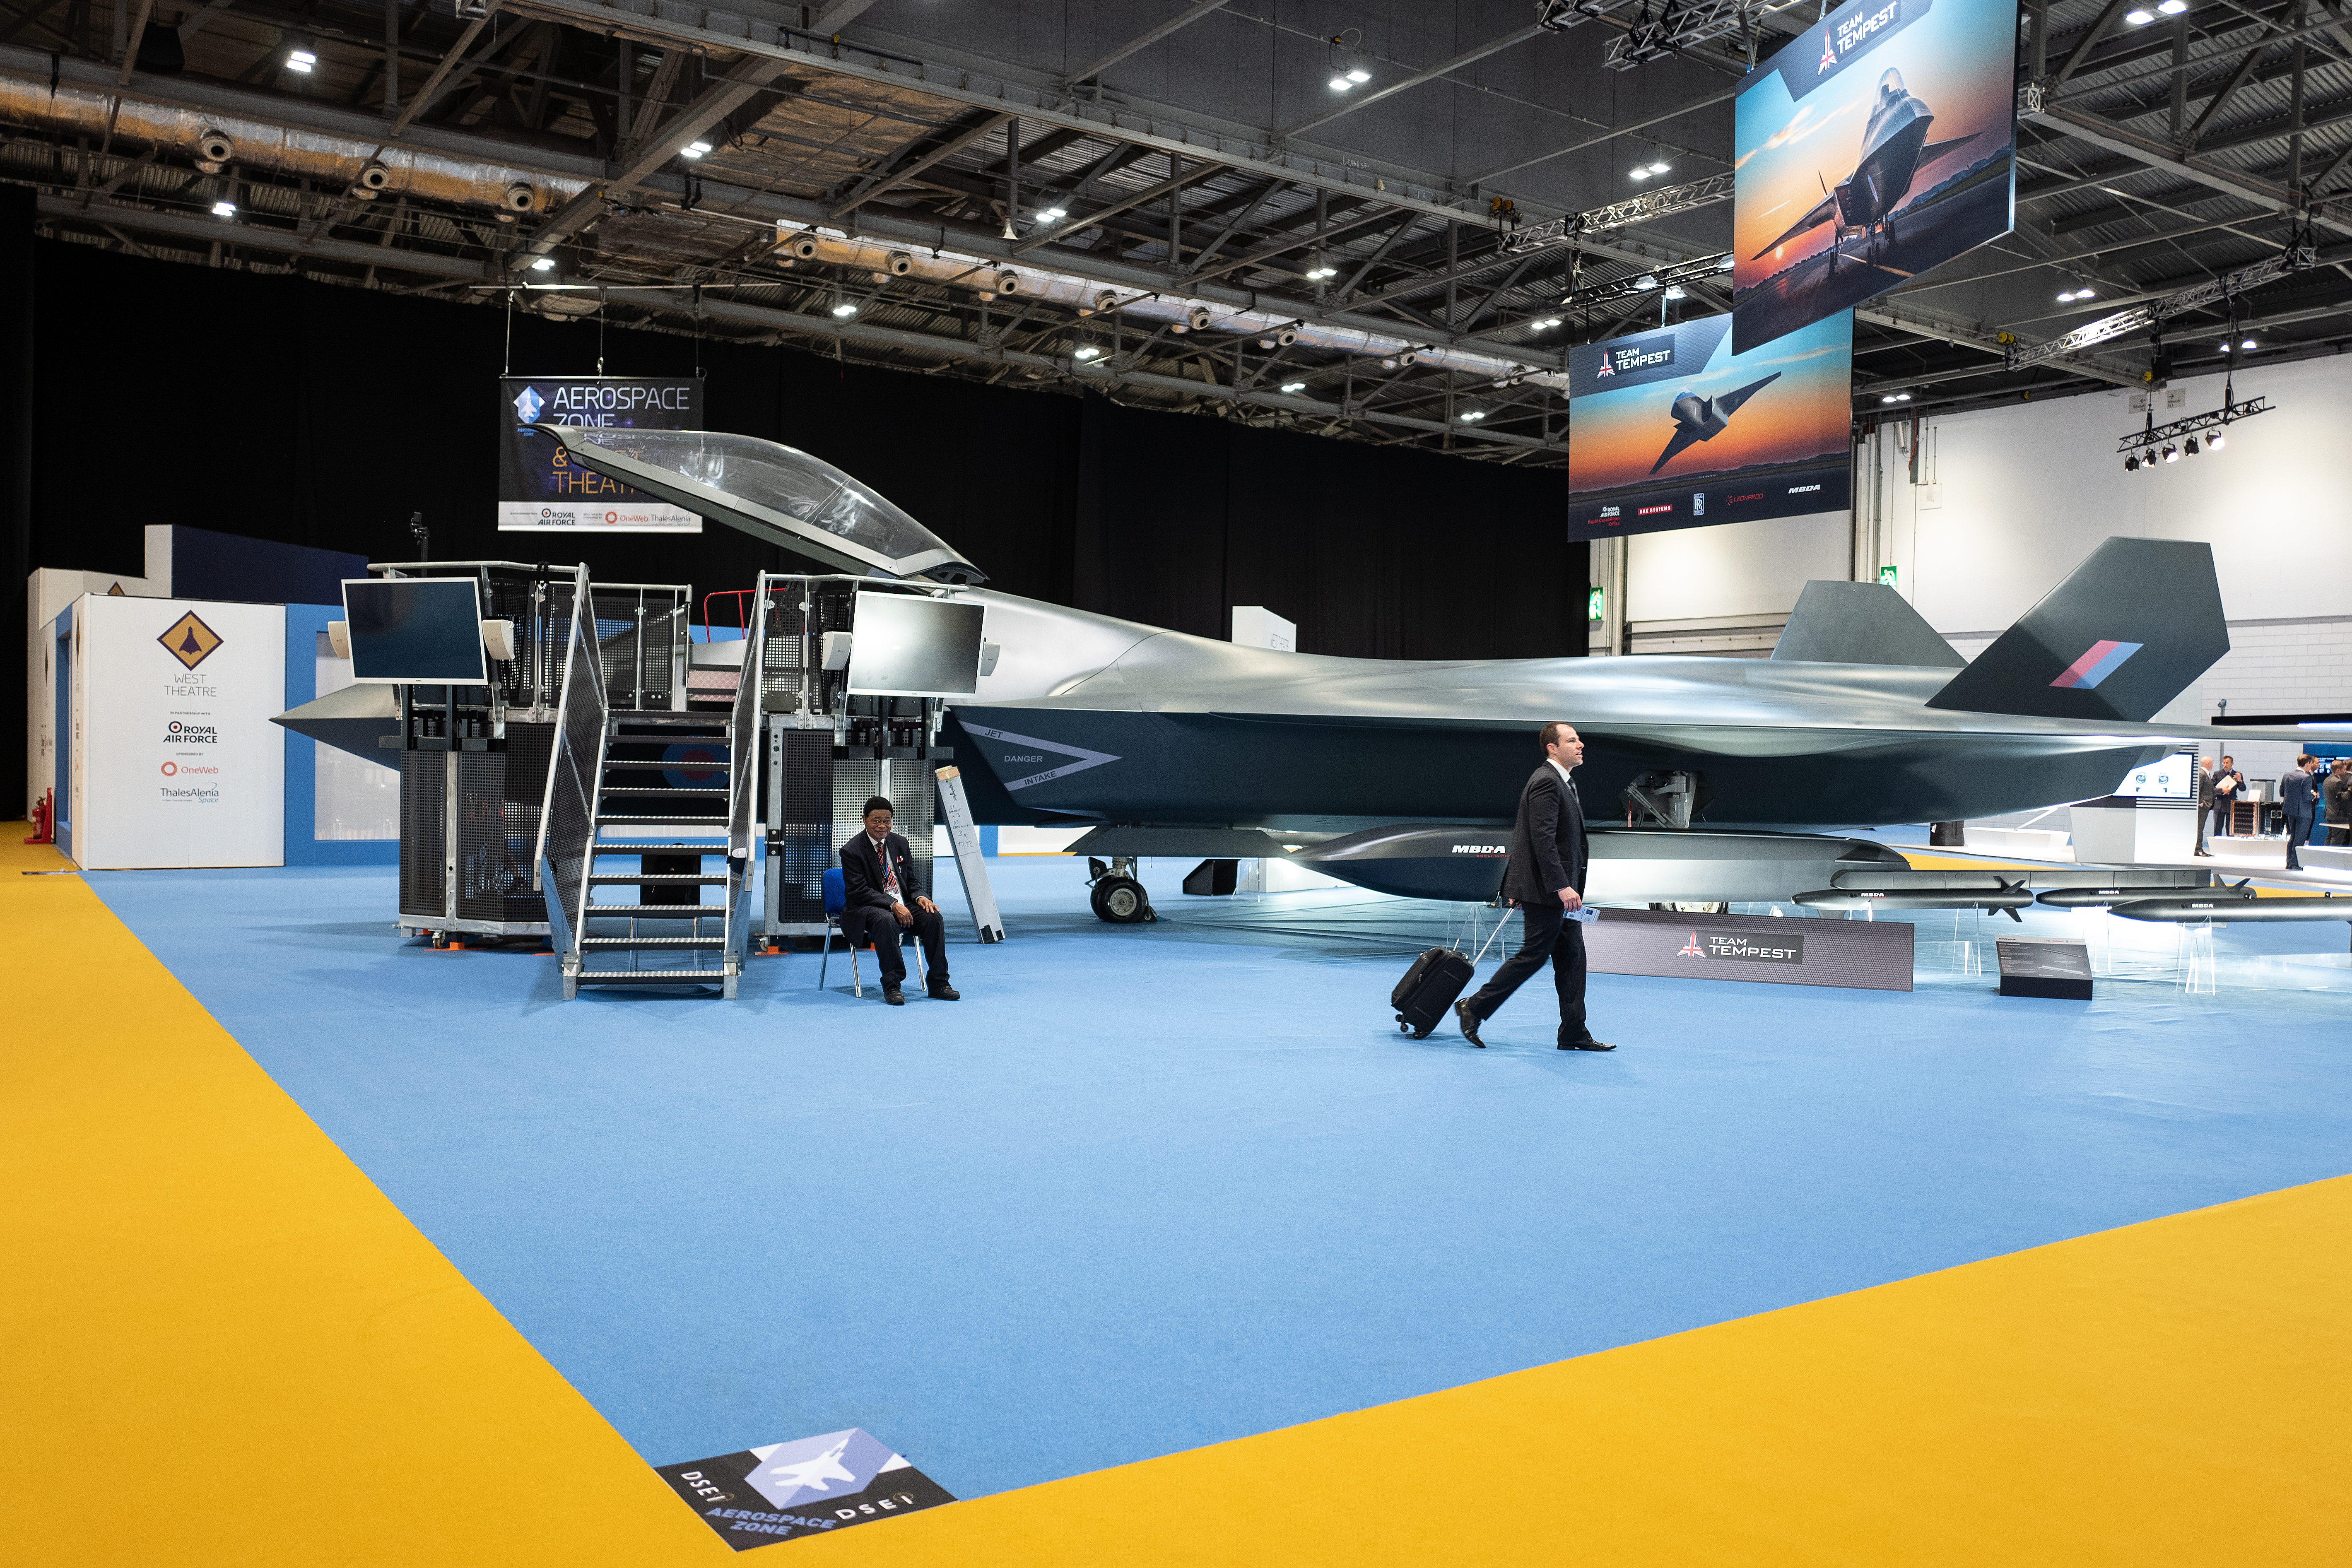 At the DSEI arms fair, a delegate walks past a model of the BAE Systems Tempest fighter jet. (Leon Neal/Getty Images)